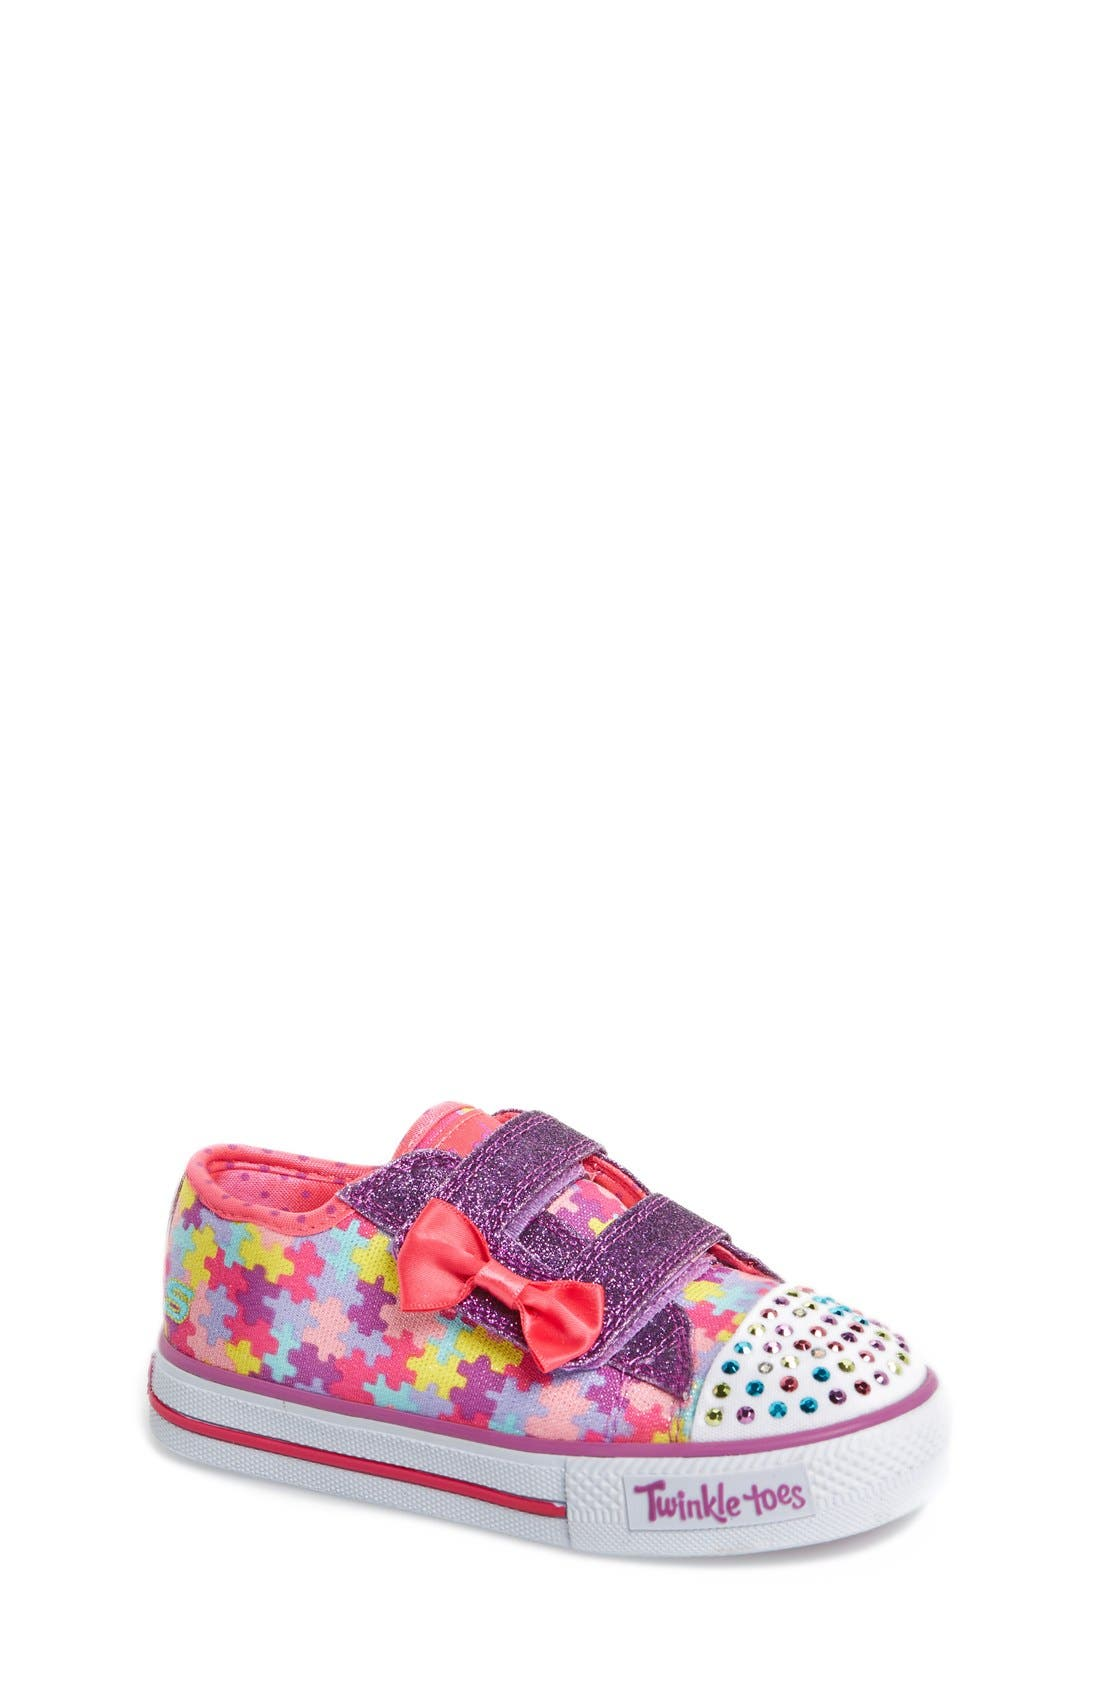 Main Image - SKECHERS 'Twinkle Toes - Shuffles Jumpin Jigsaw' Light-Up Sneaker (Toddler)